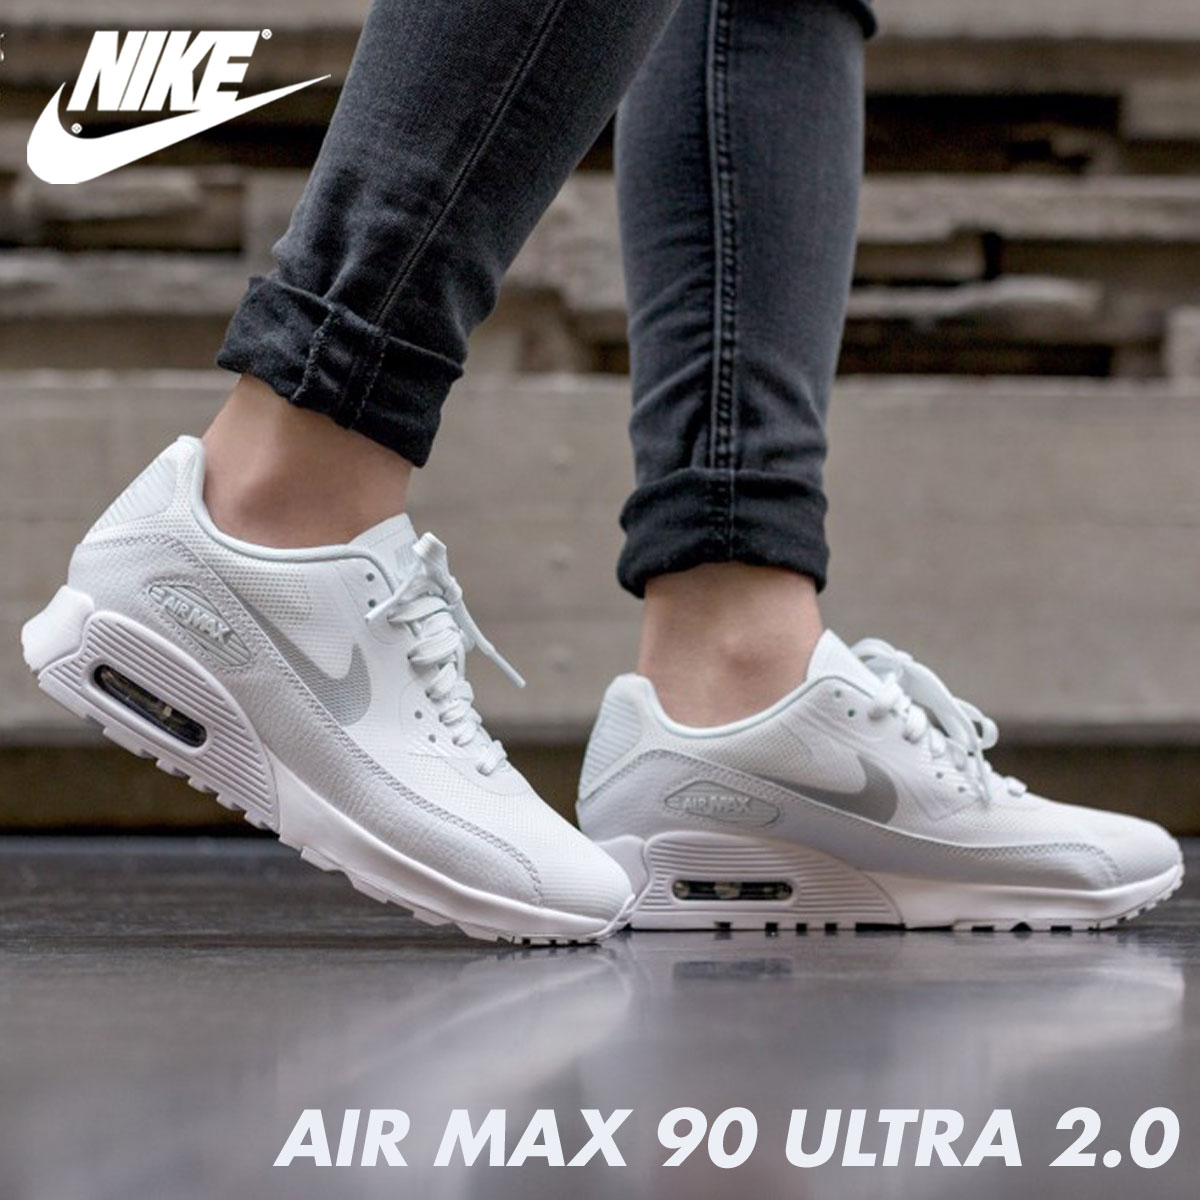 NIKE Kie Ney AMAX 90 ultra Lady's sneakers WMNS AIR MAX 90 ULTRA 2.0 881,106 101 shoes white white